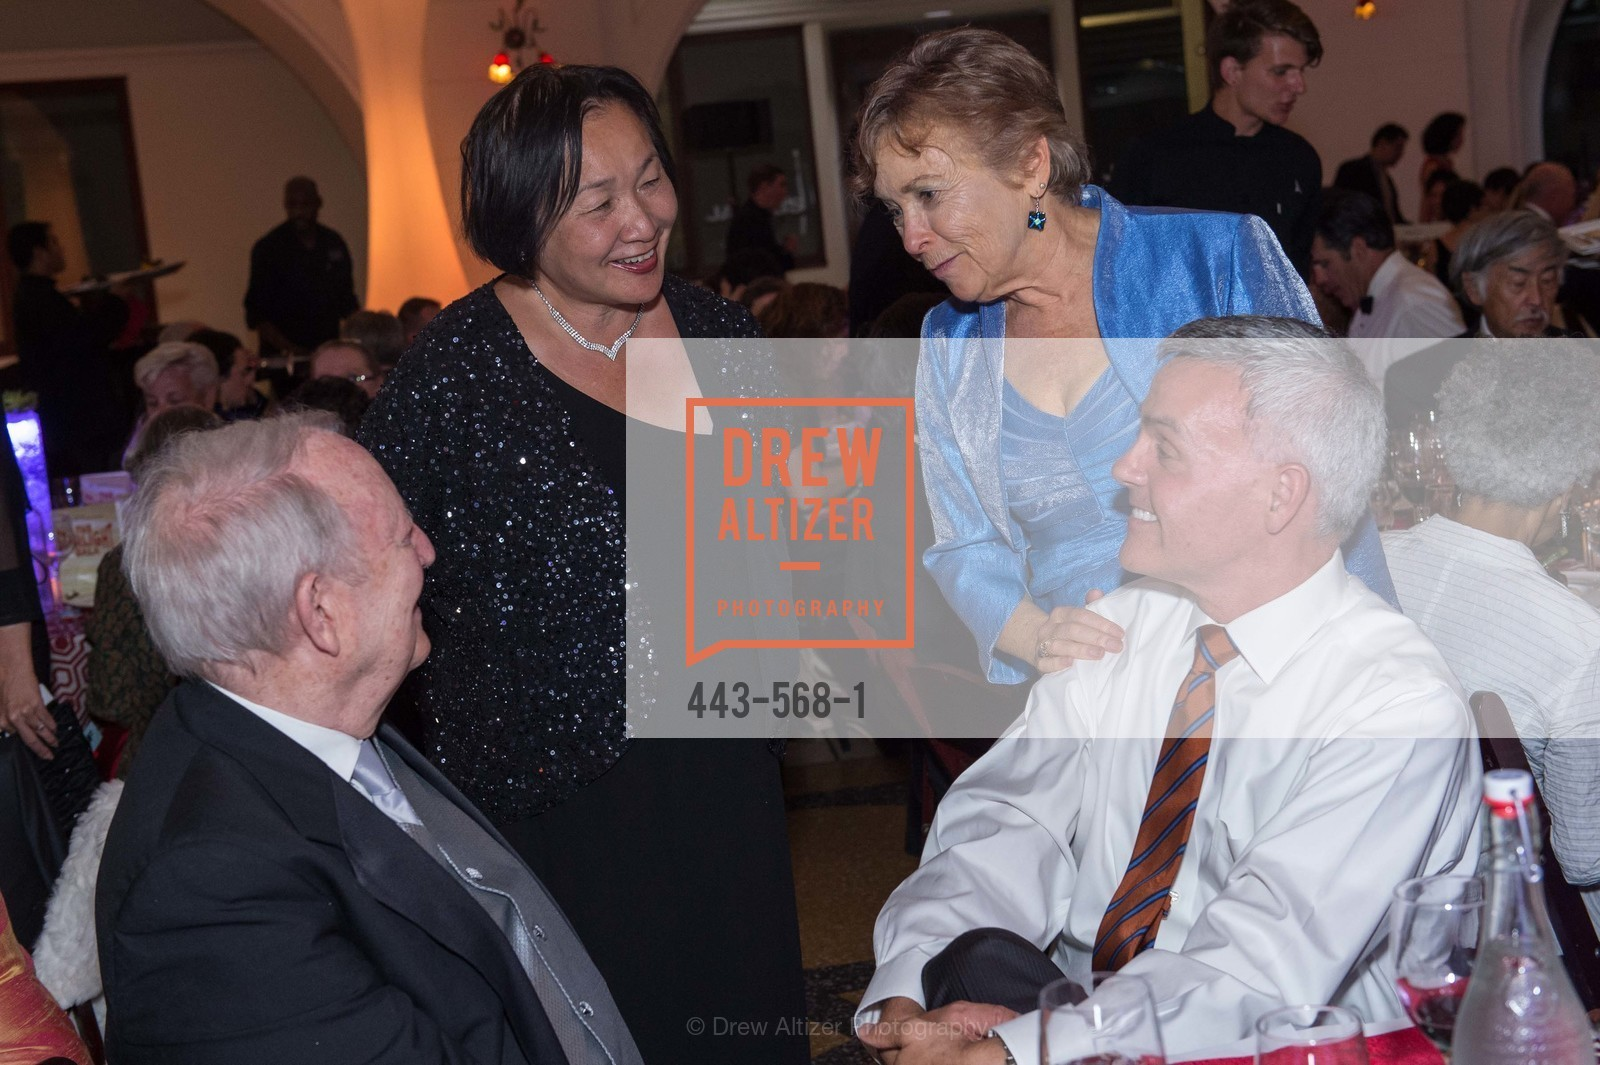 Jean Quan, Sheila Jordan, SOTHEBY'S  Hosts a Private Viewing of Highlights from the Collection of MRS. PAUL MELLON, US, September 17th, 2014,Drew Altizer, Drew Altizer Photography, full-service agency, private events, San Francisco photographer, photographer california